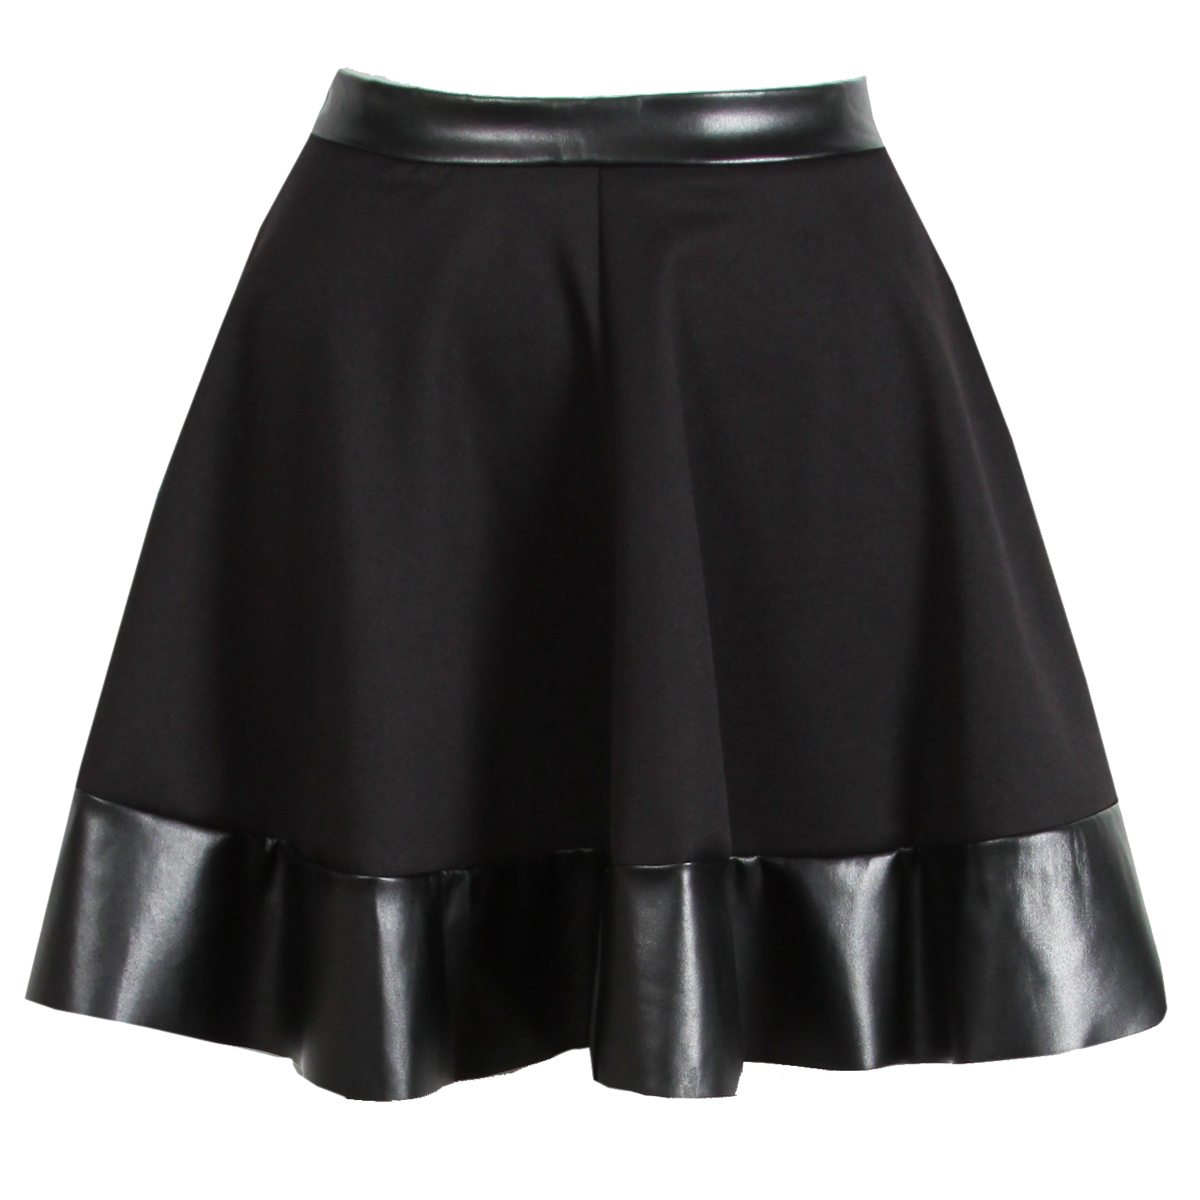 NEW WOMENS BLACK PU LEATHER TRIM SKATER SKIRT MINI PARTY HIGH WAISTED BOX Enlarged Preview